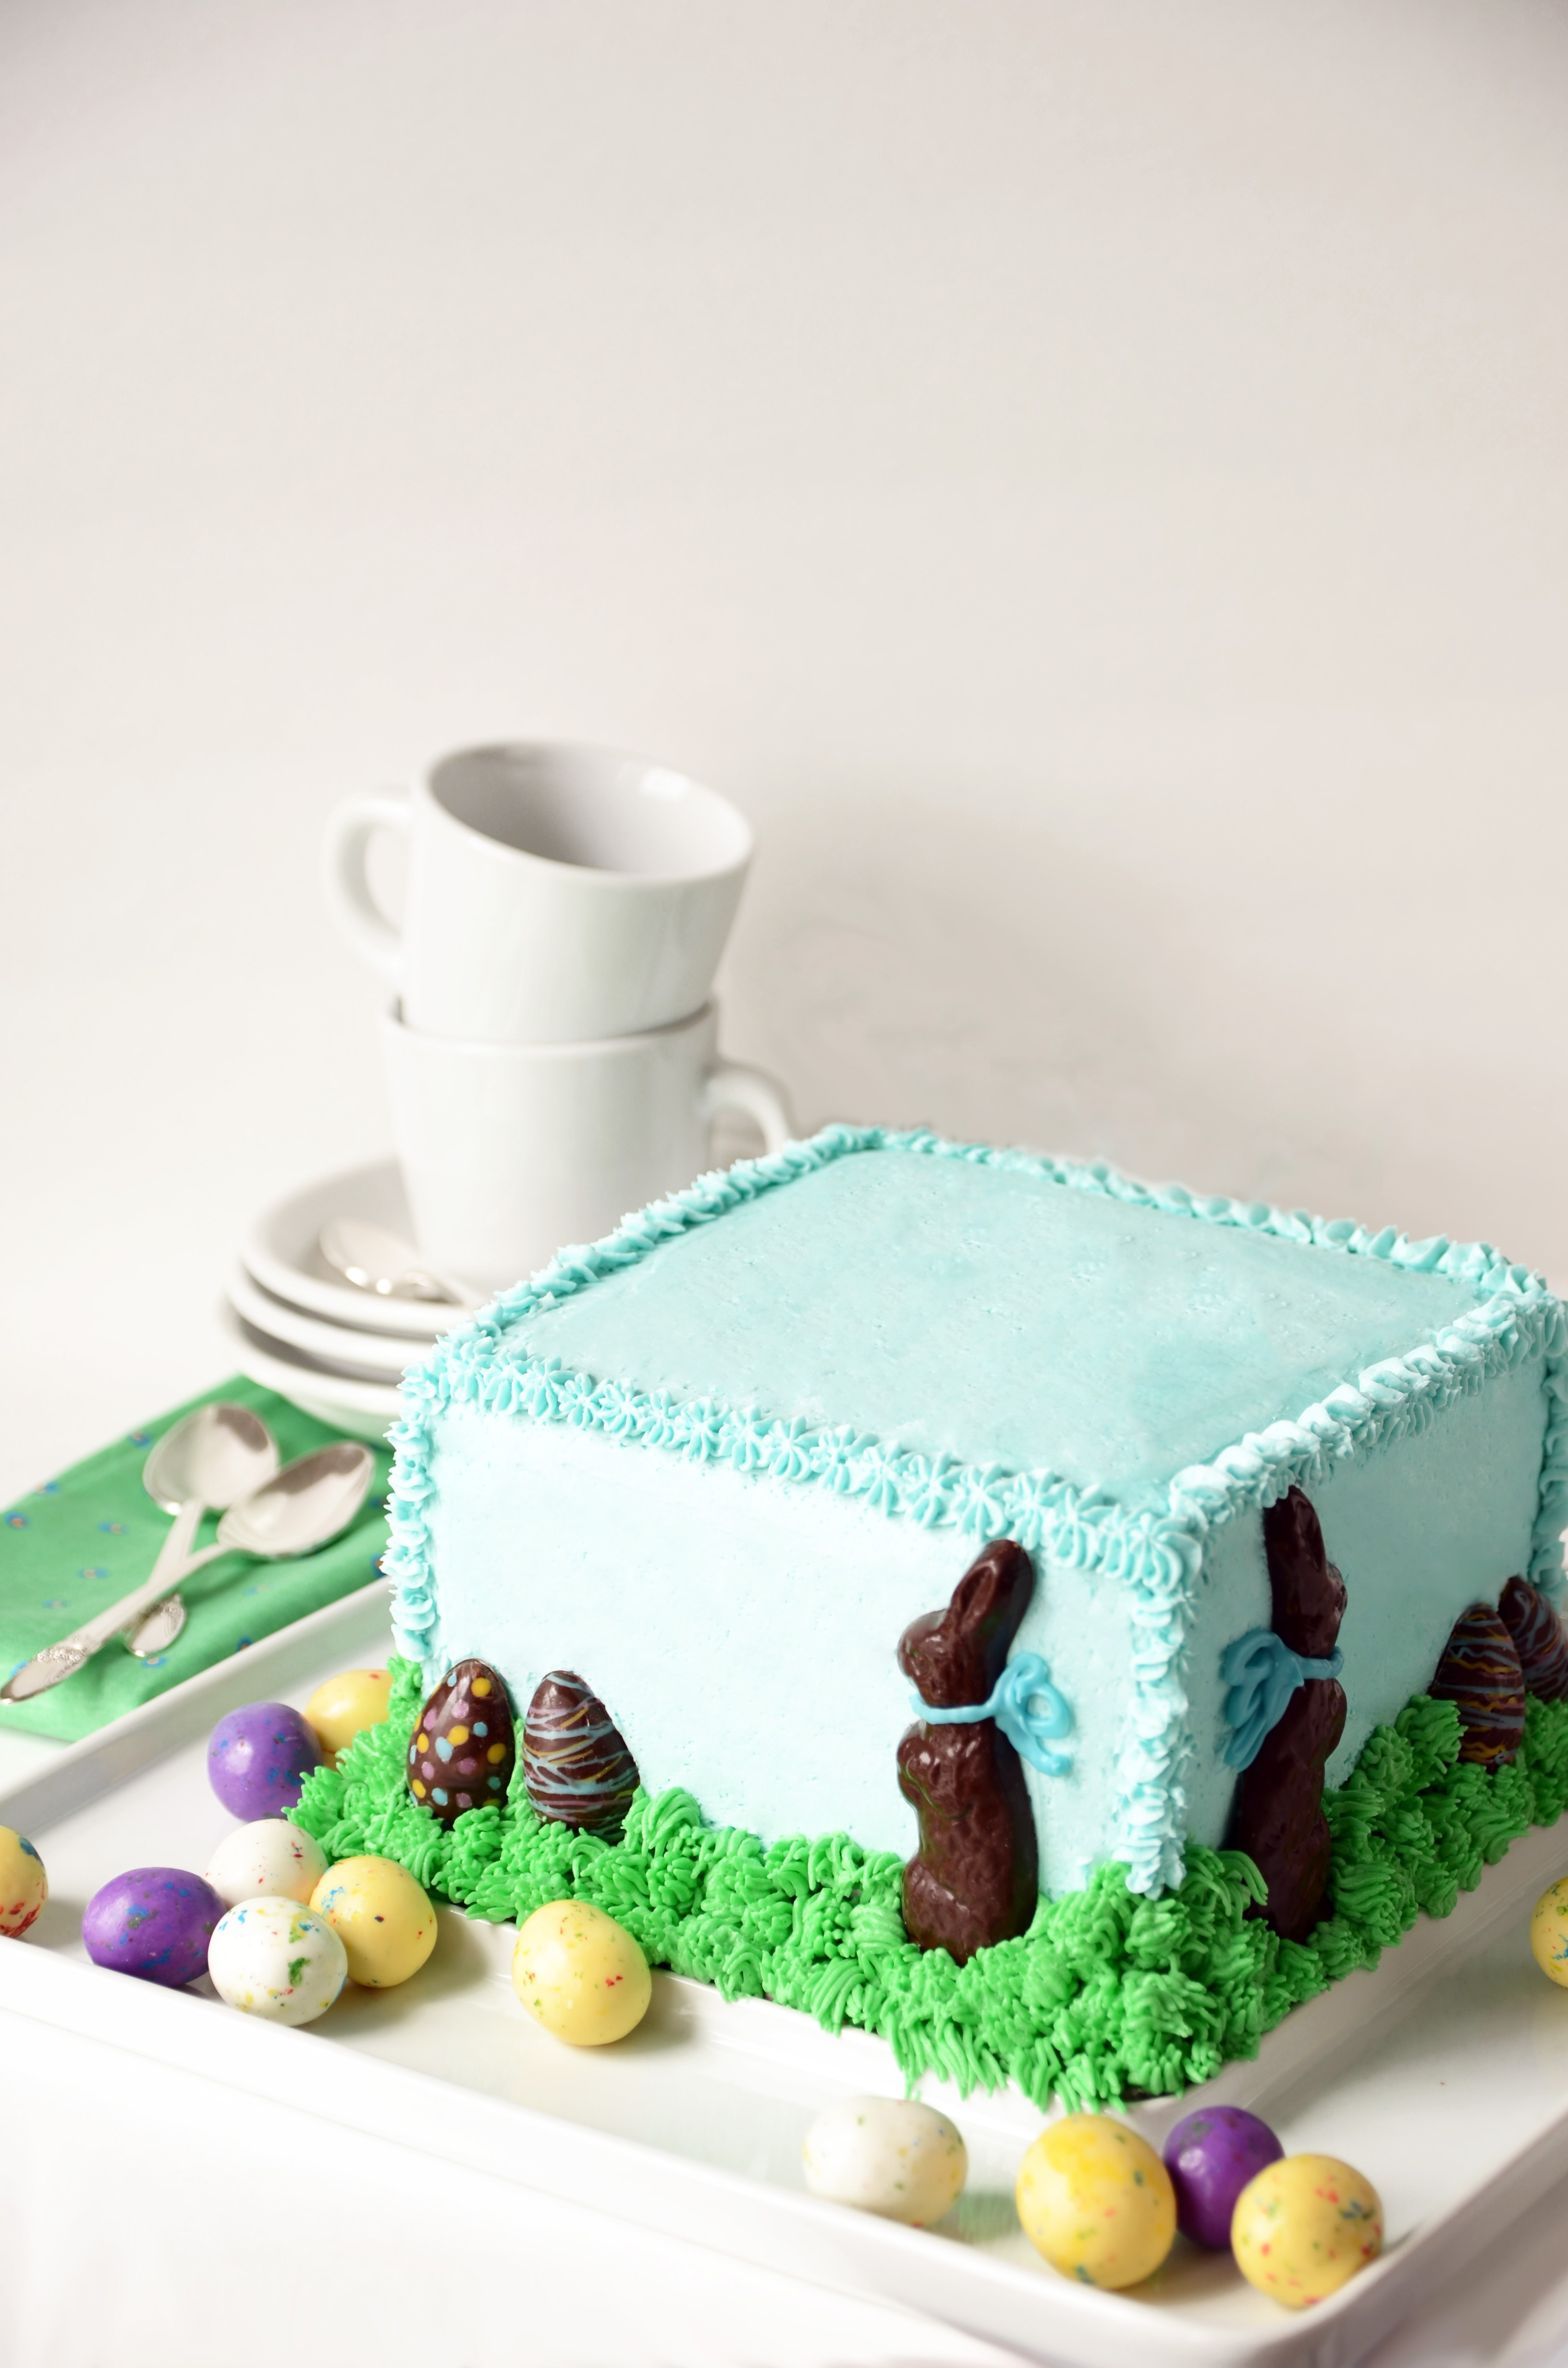 sn't love the Easter Bunny? Make this hippity-hoppity cake from scratch for your Easter celebration! impress the most discerning Easter guest.   vintagekitty.com